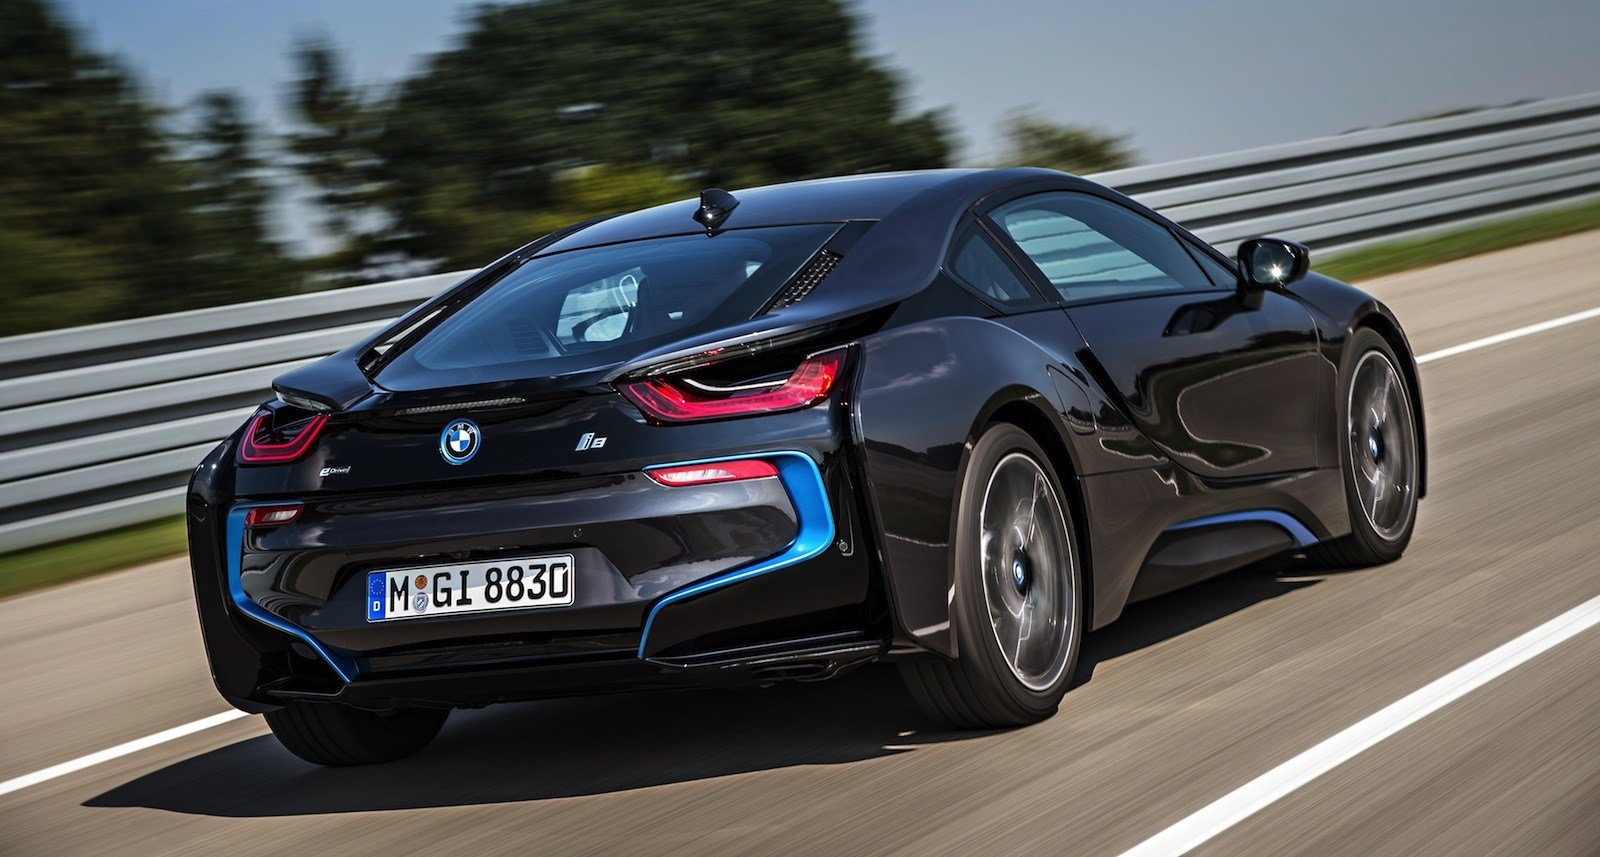 Latest Bmw I8 570Nm Hybrid Supercar Coming To Oz Photos 1 Of 16 Free Download